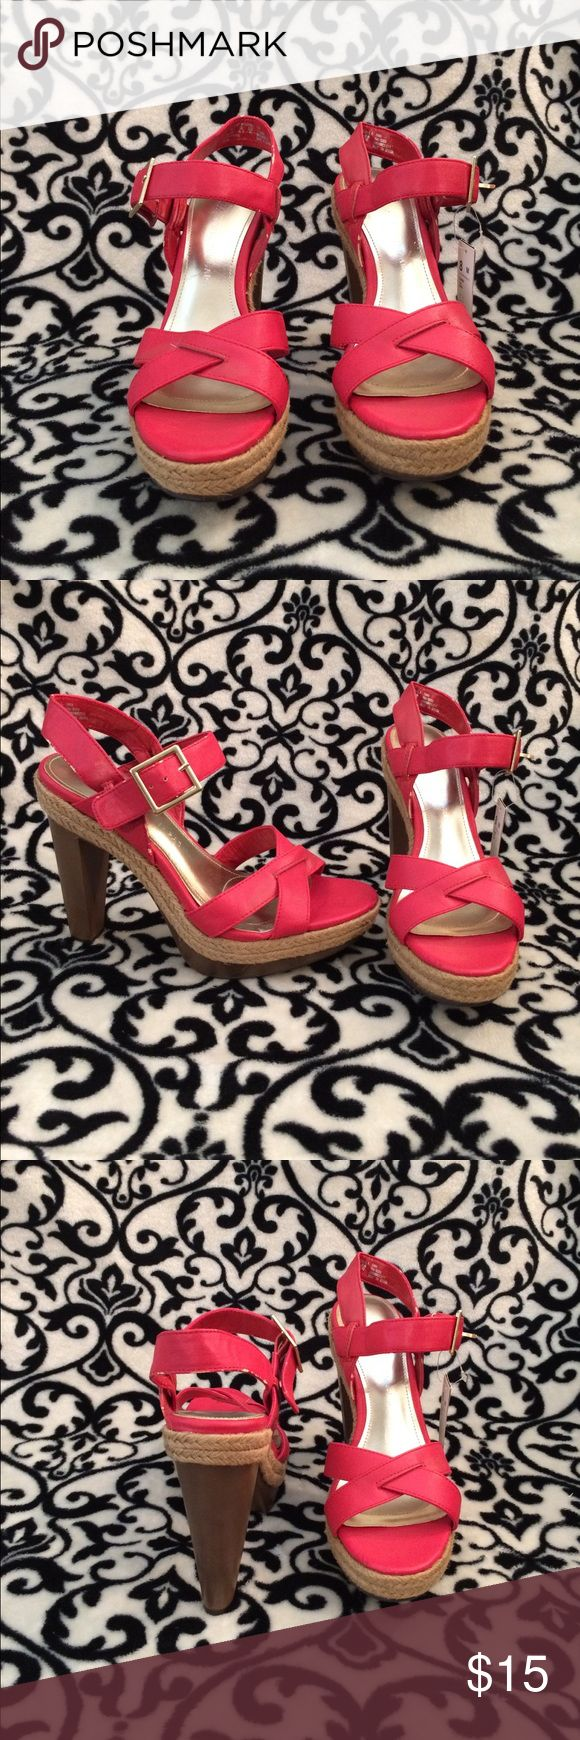 Sofia Vegara Coral Tara heels Absolutely beautiful l, tag still on, never been worn heels. Now due to the fact that I don't have the box a tiny bits that are not noticeable of the back strap has came off! Shoes Heels